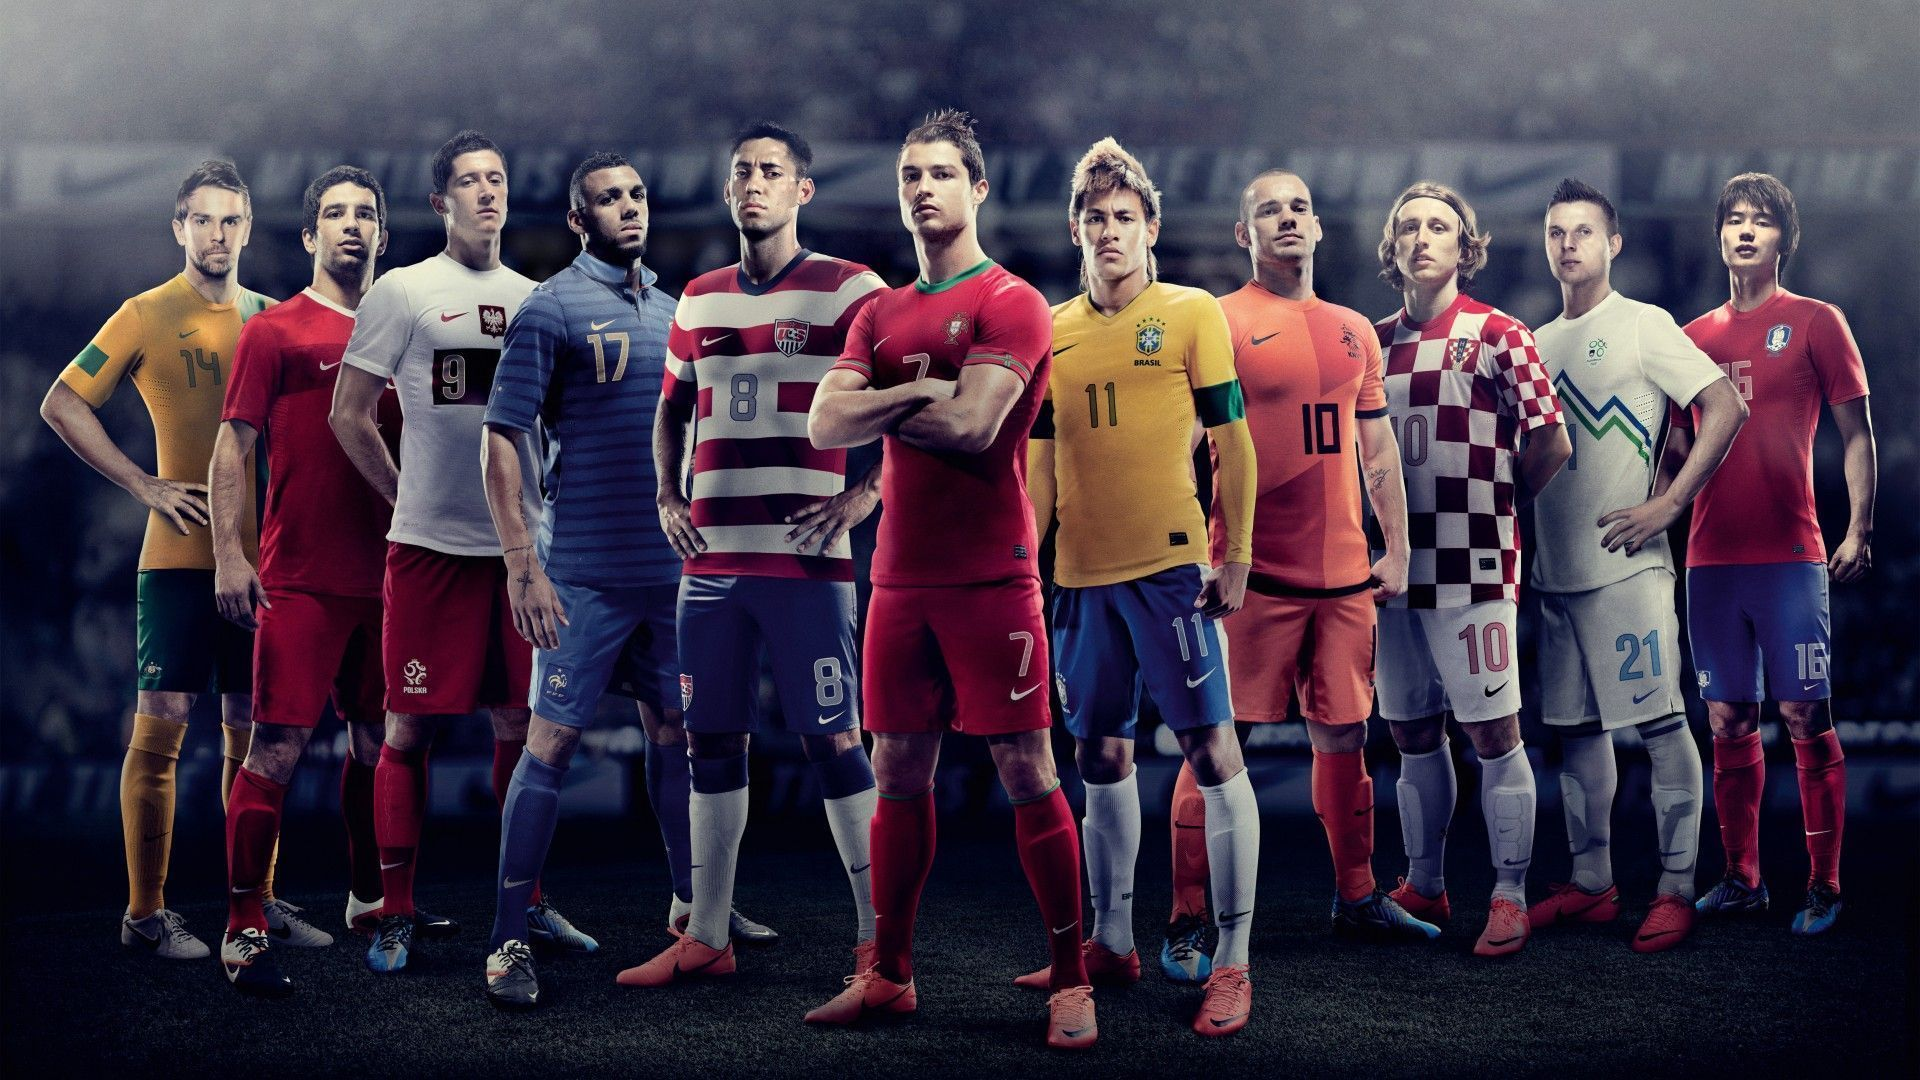 Cool Soccer Wallpapers Hd 1920x1080